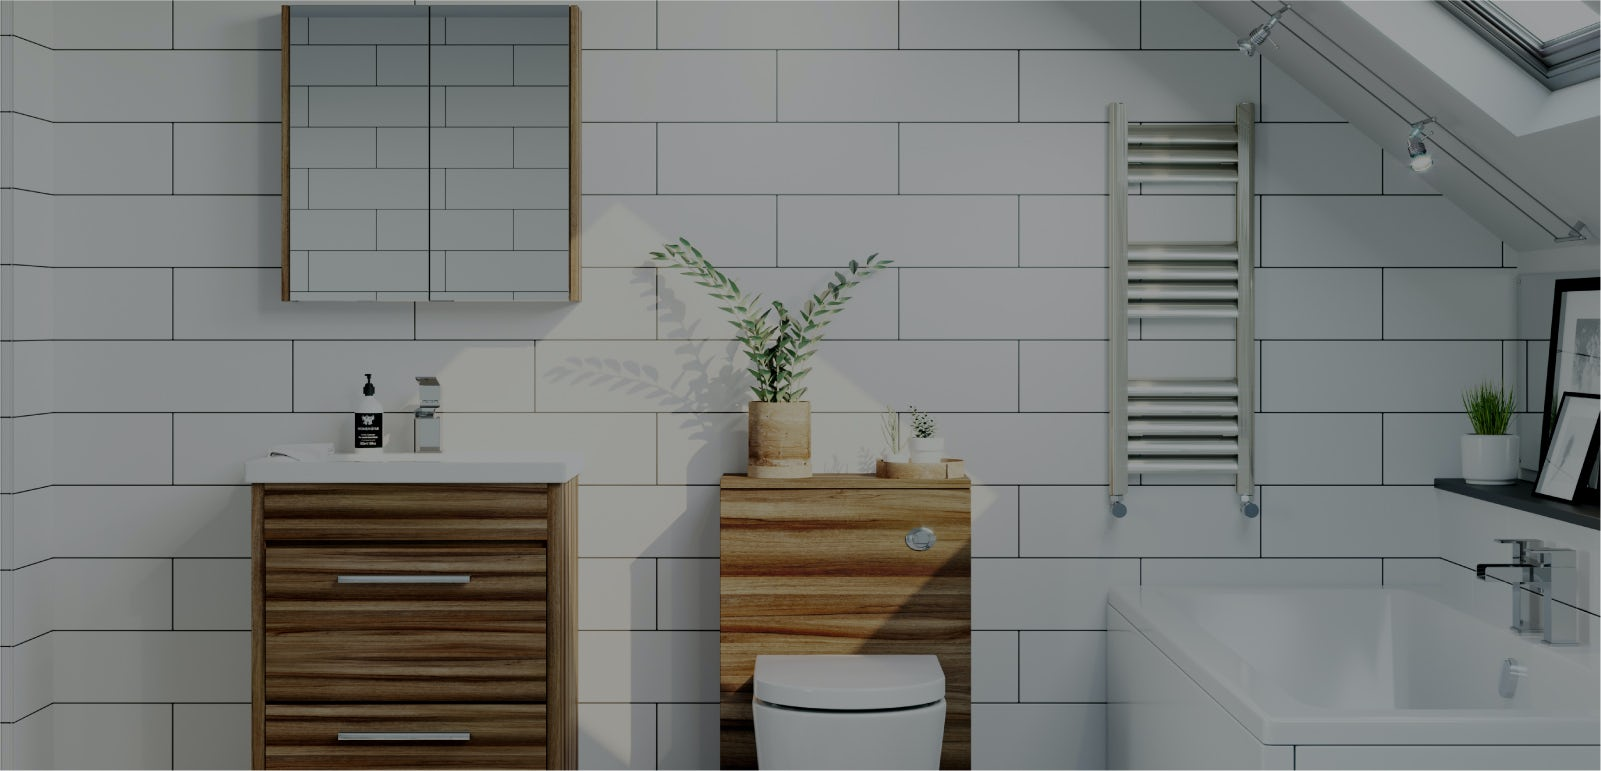 Ask the experts: Can I convert an upstairs bedroom into a bathroom?